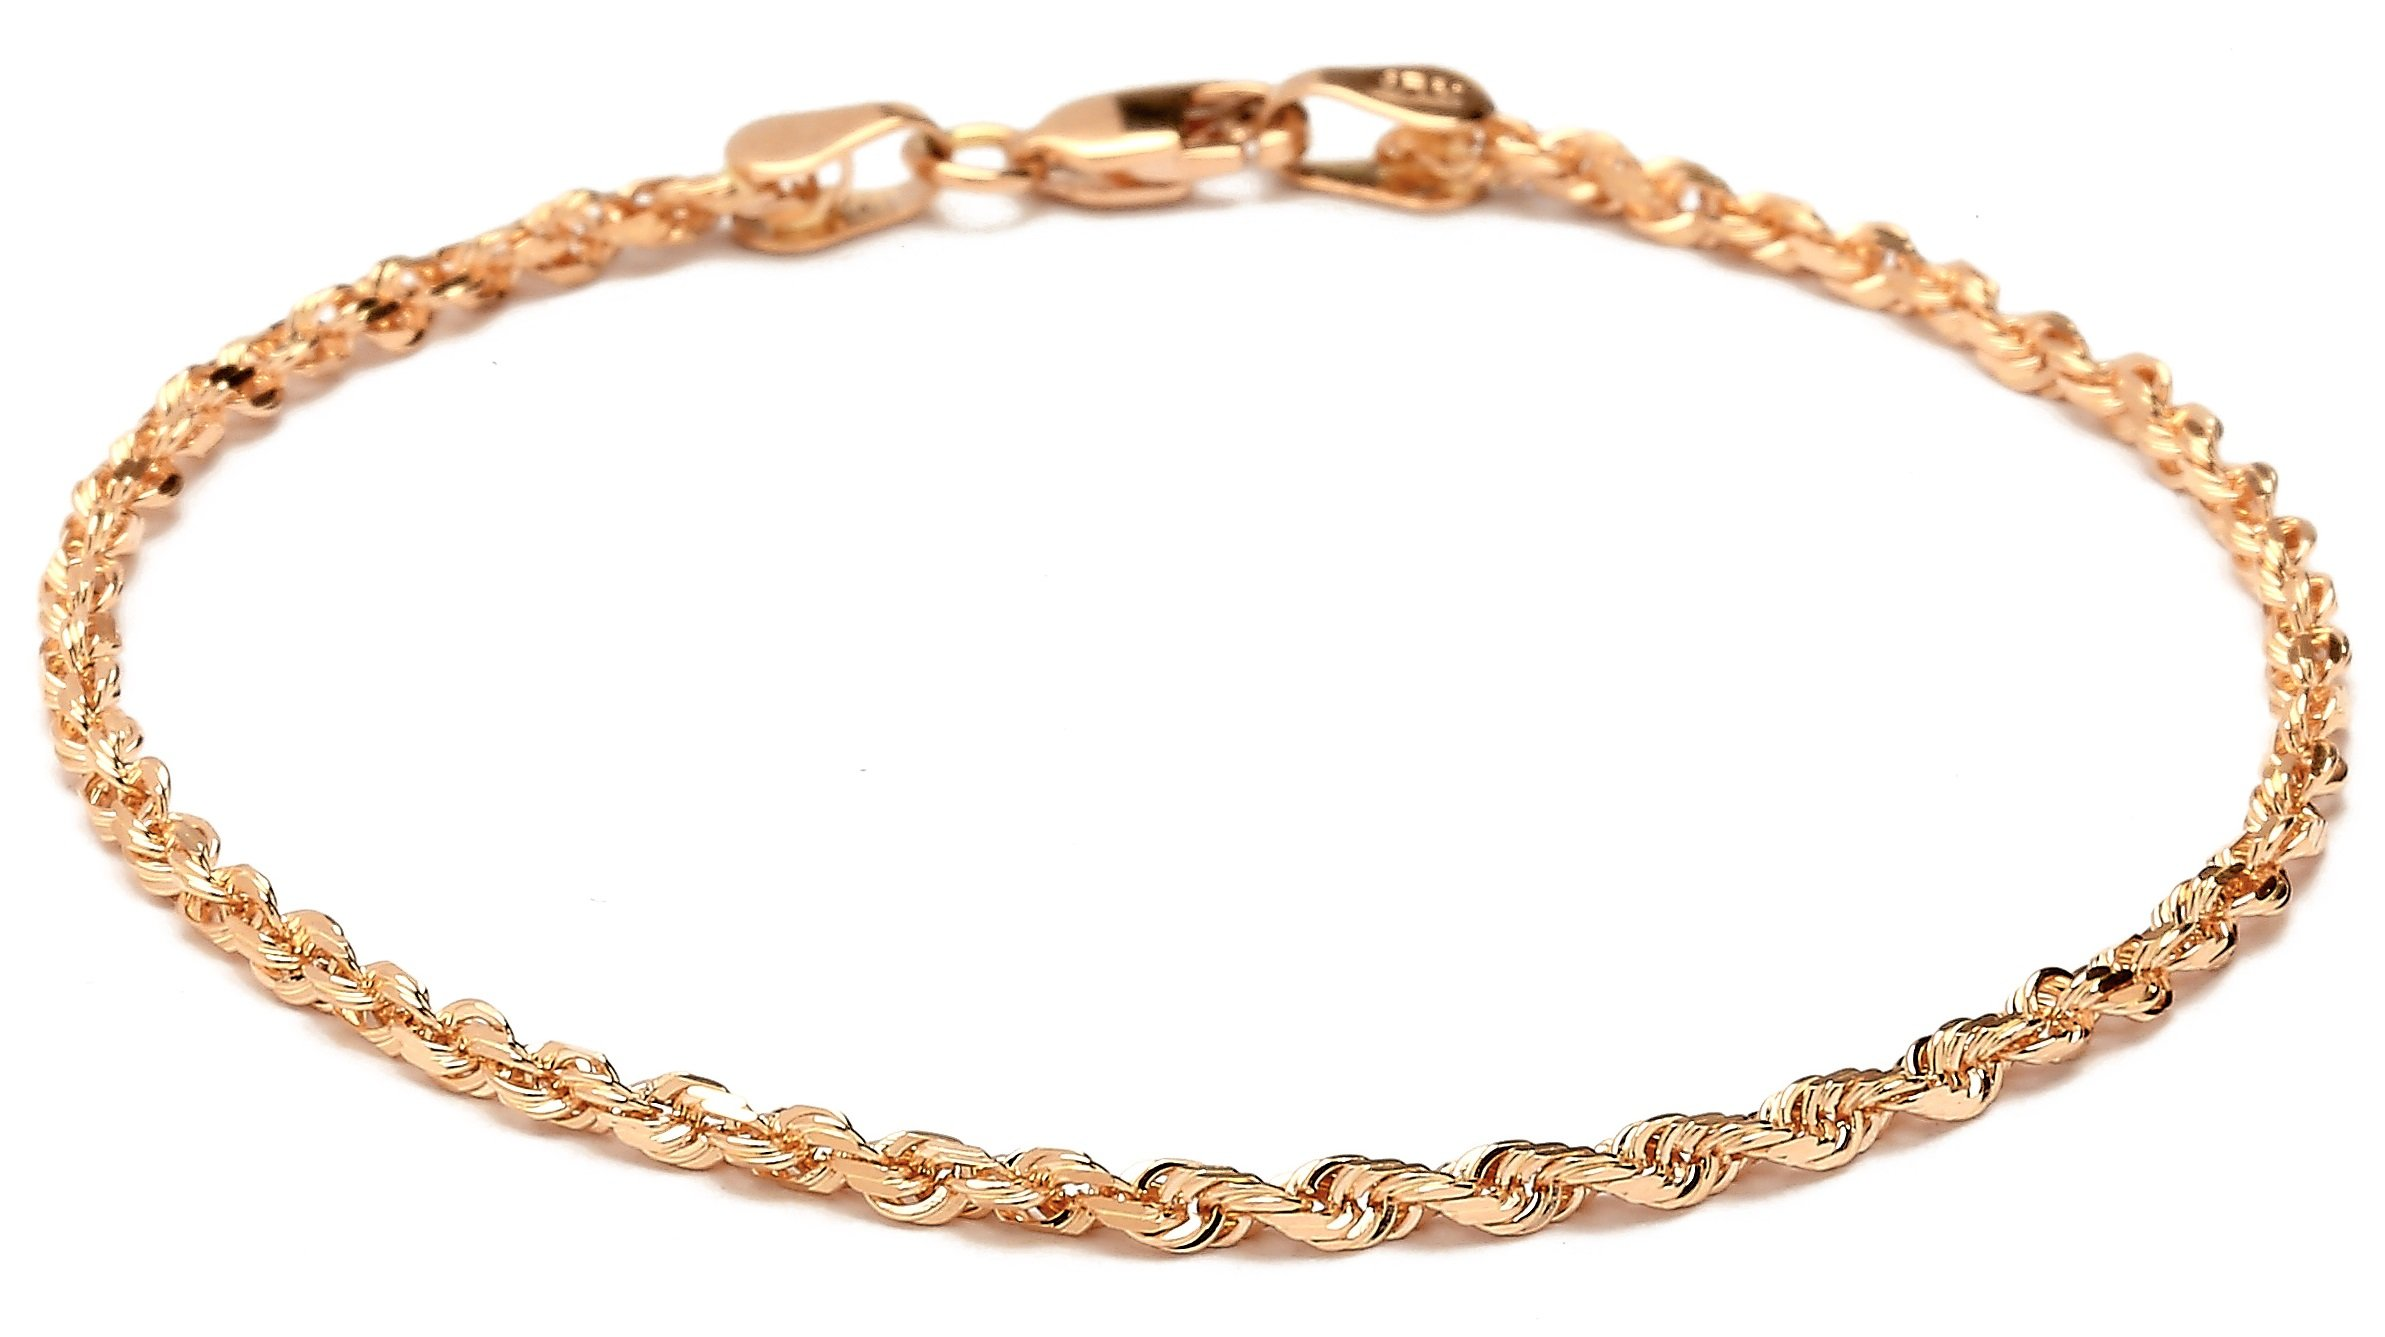 Floreo 9 Inch 10k Rose Pink Gold Solid Diamond Cut Rope Chain Ankle Bracelet Anklet for Women and Girls (0.1'')